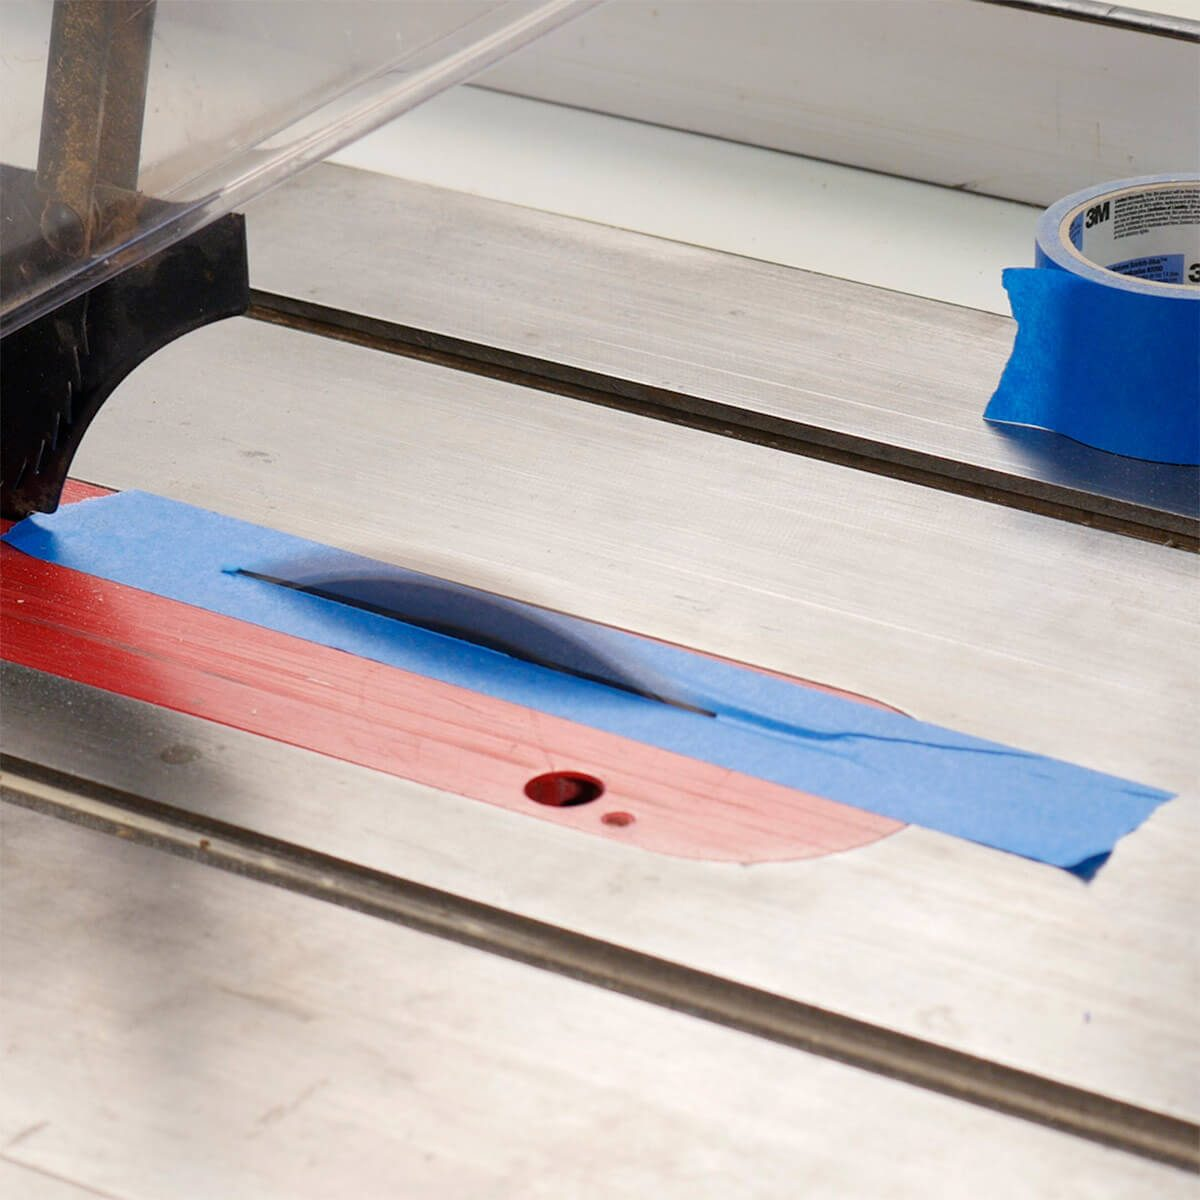 cutting through tape on table saw for narrow strips